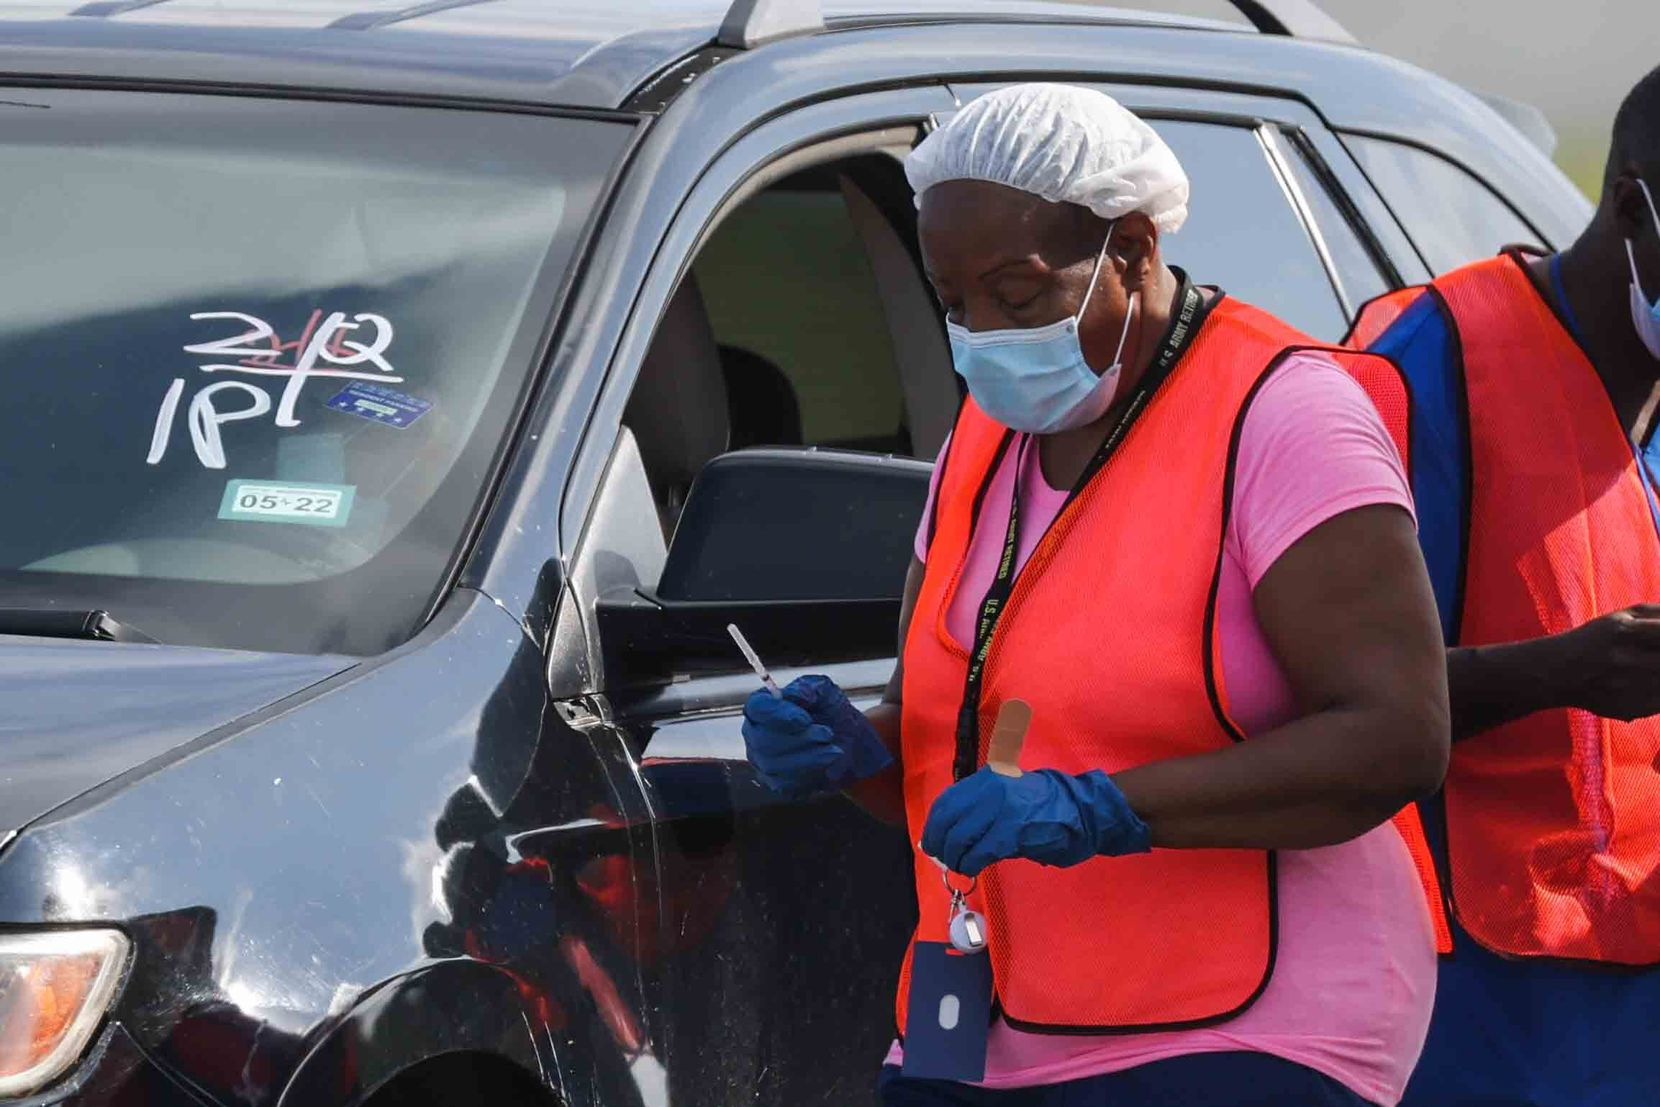 A nurse with a dose of the COVID-19 vaccine went to a vehicle where a person waited to be vaccinated in Lot 13 at Fair Park on Aug. 7, 2021.